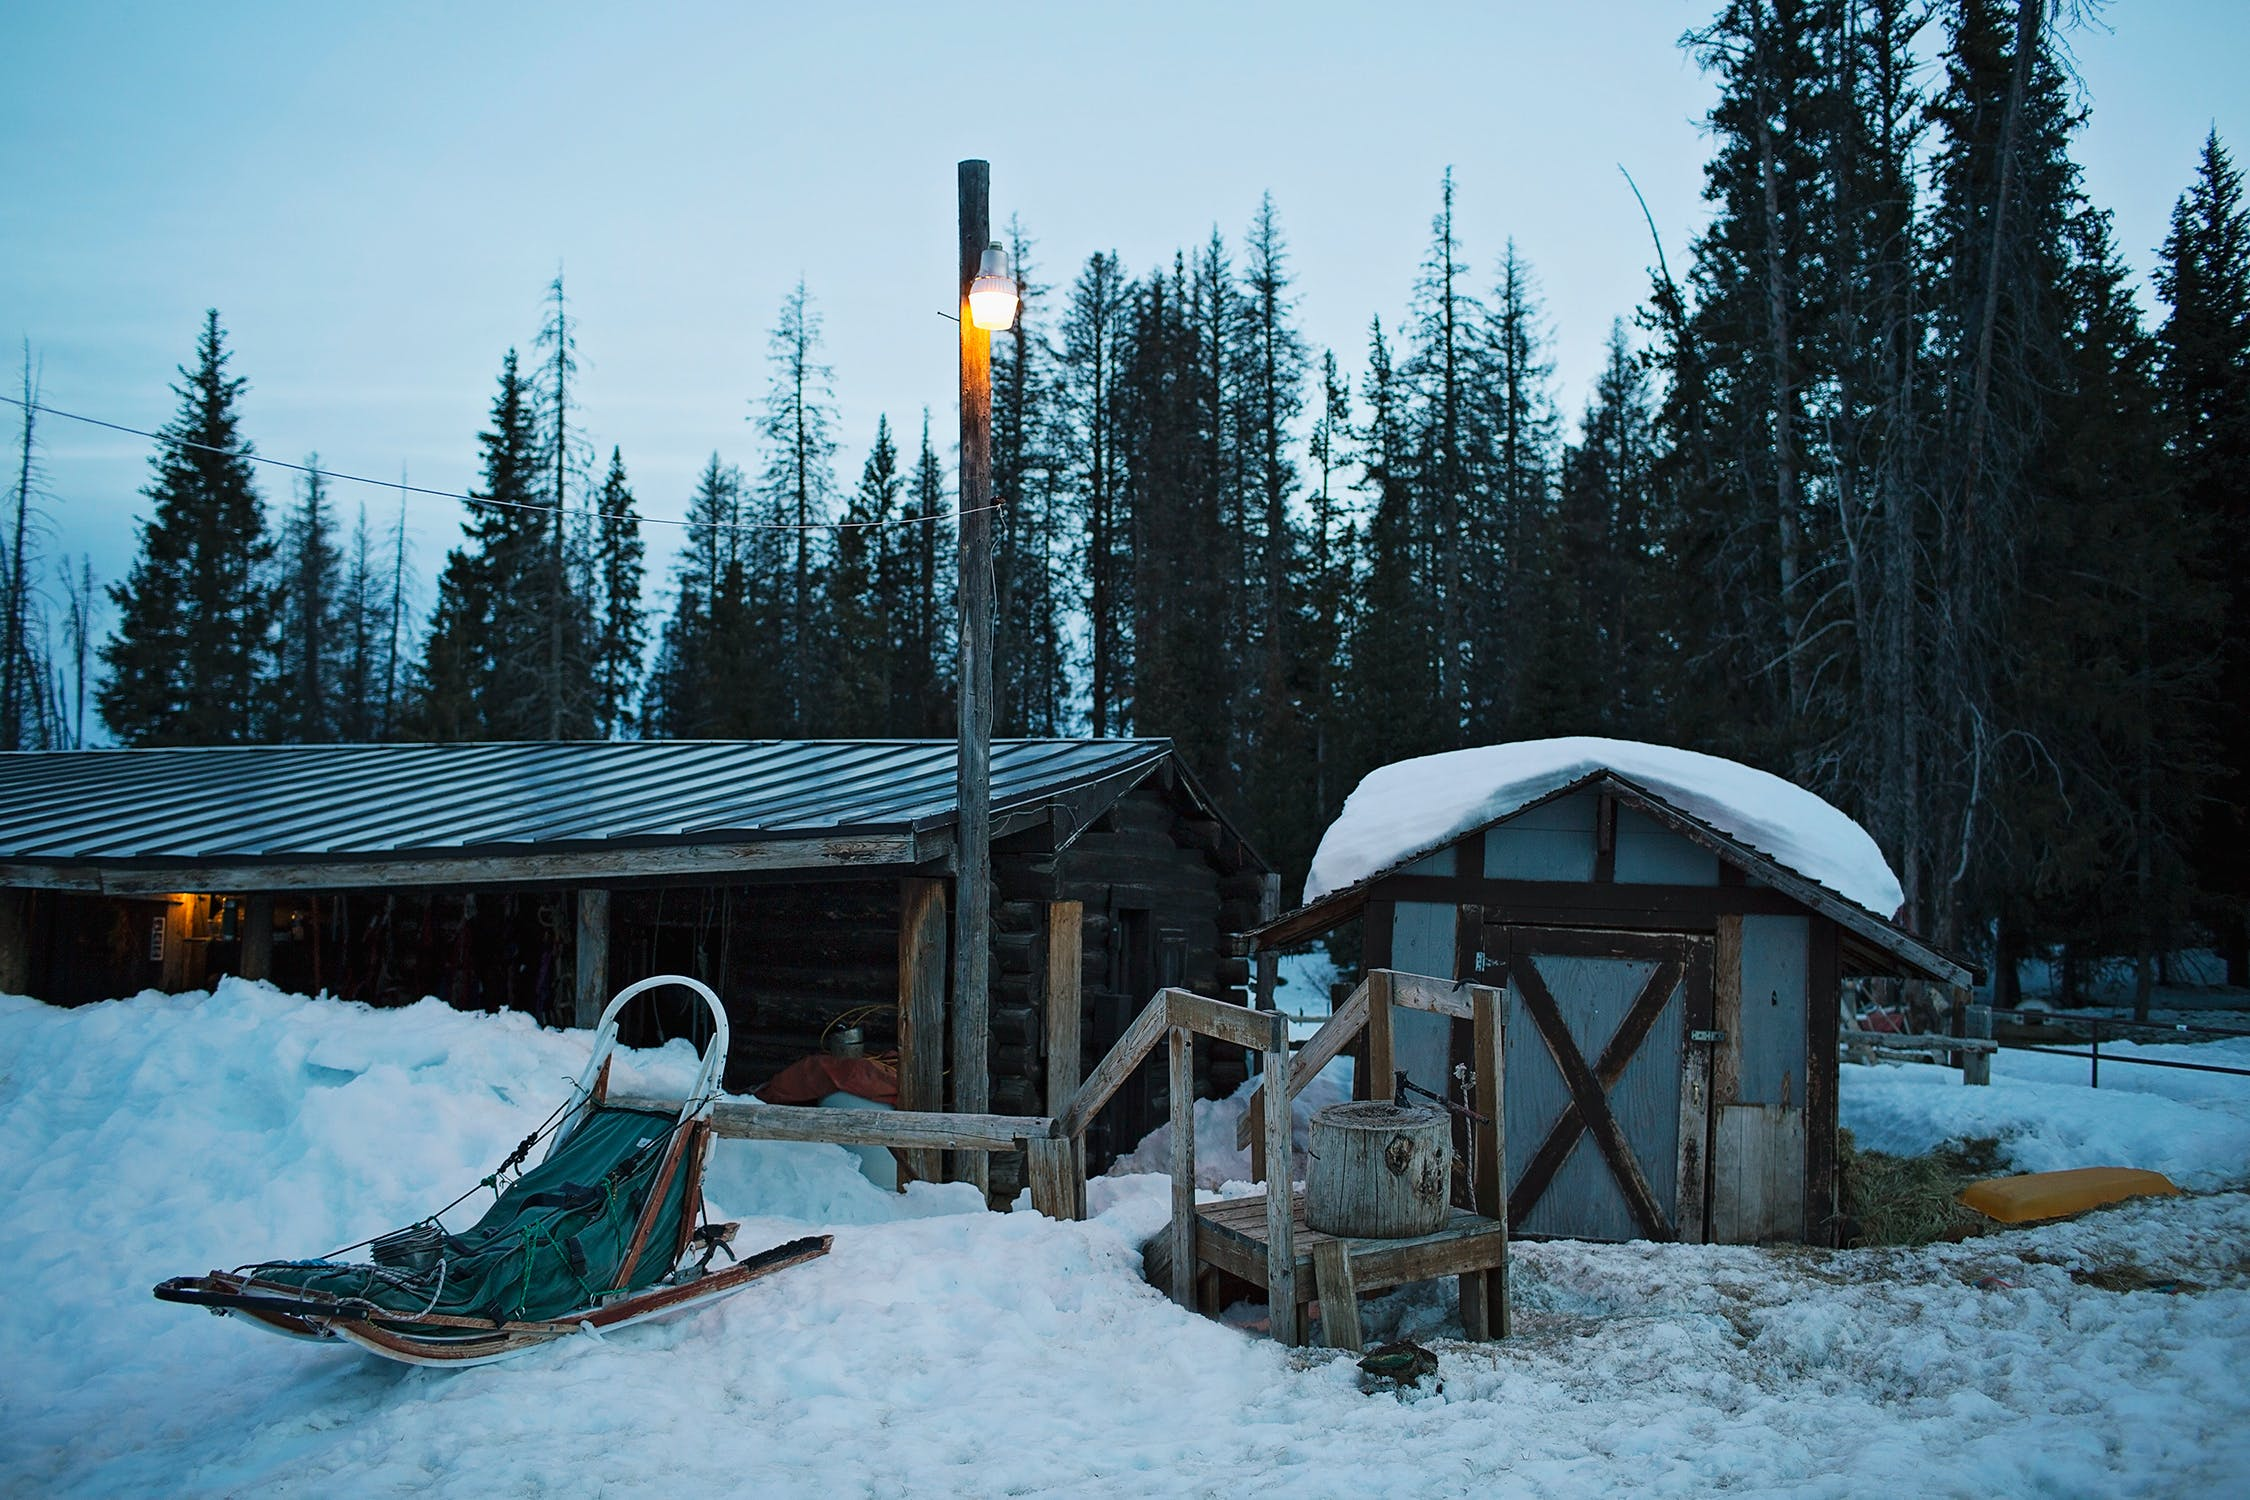 Wooden structures in a rural, winter landscape. An empty dog sled sits on the snow to the left of the frame.